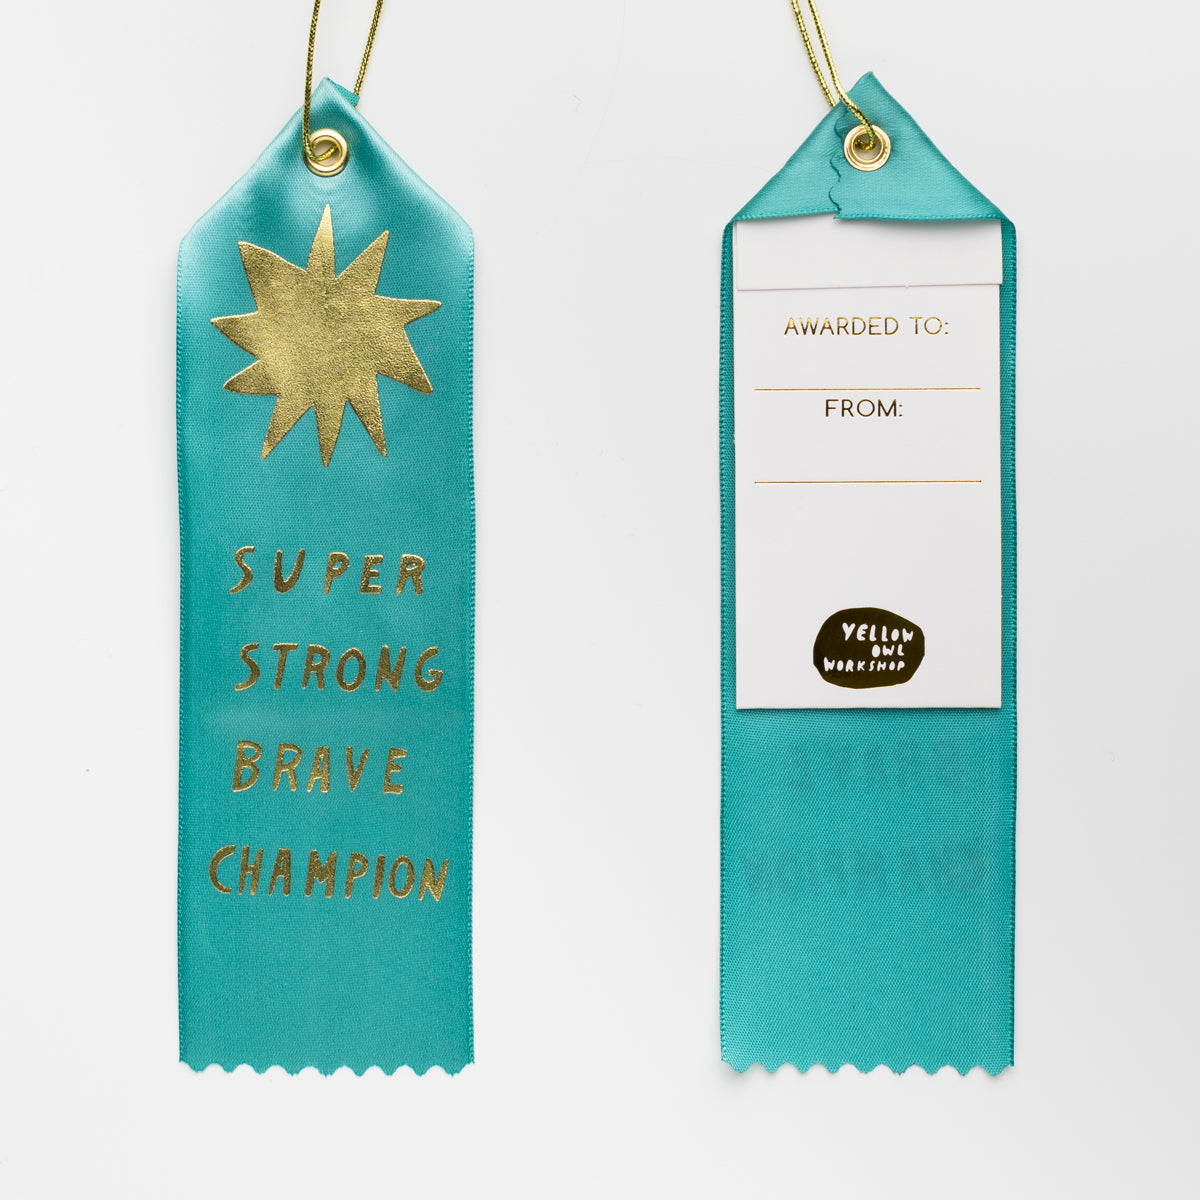 Super Strong Brave Champion - Award Ribbon Card